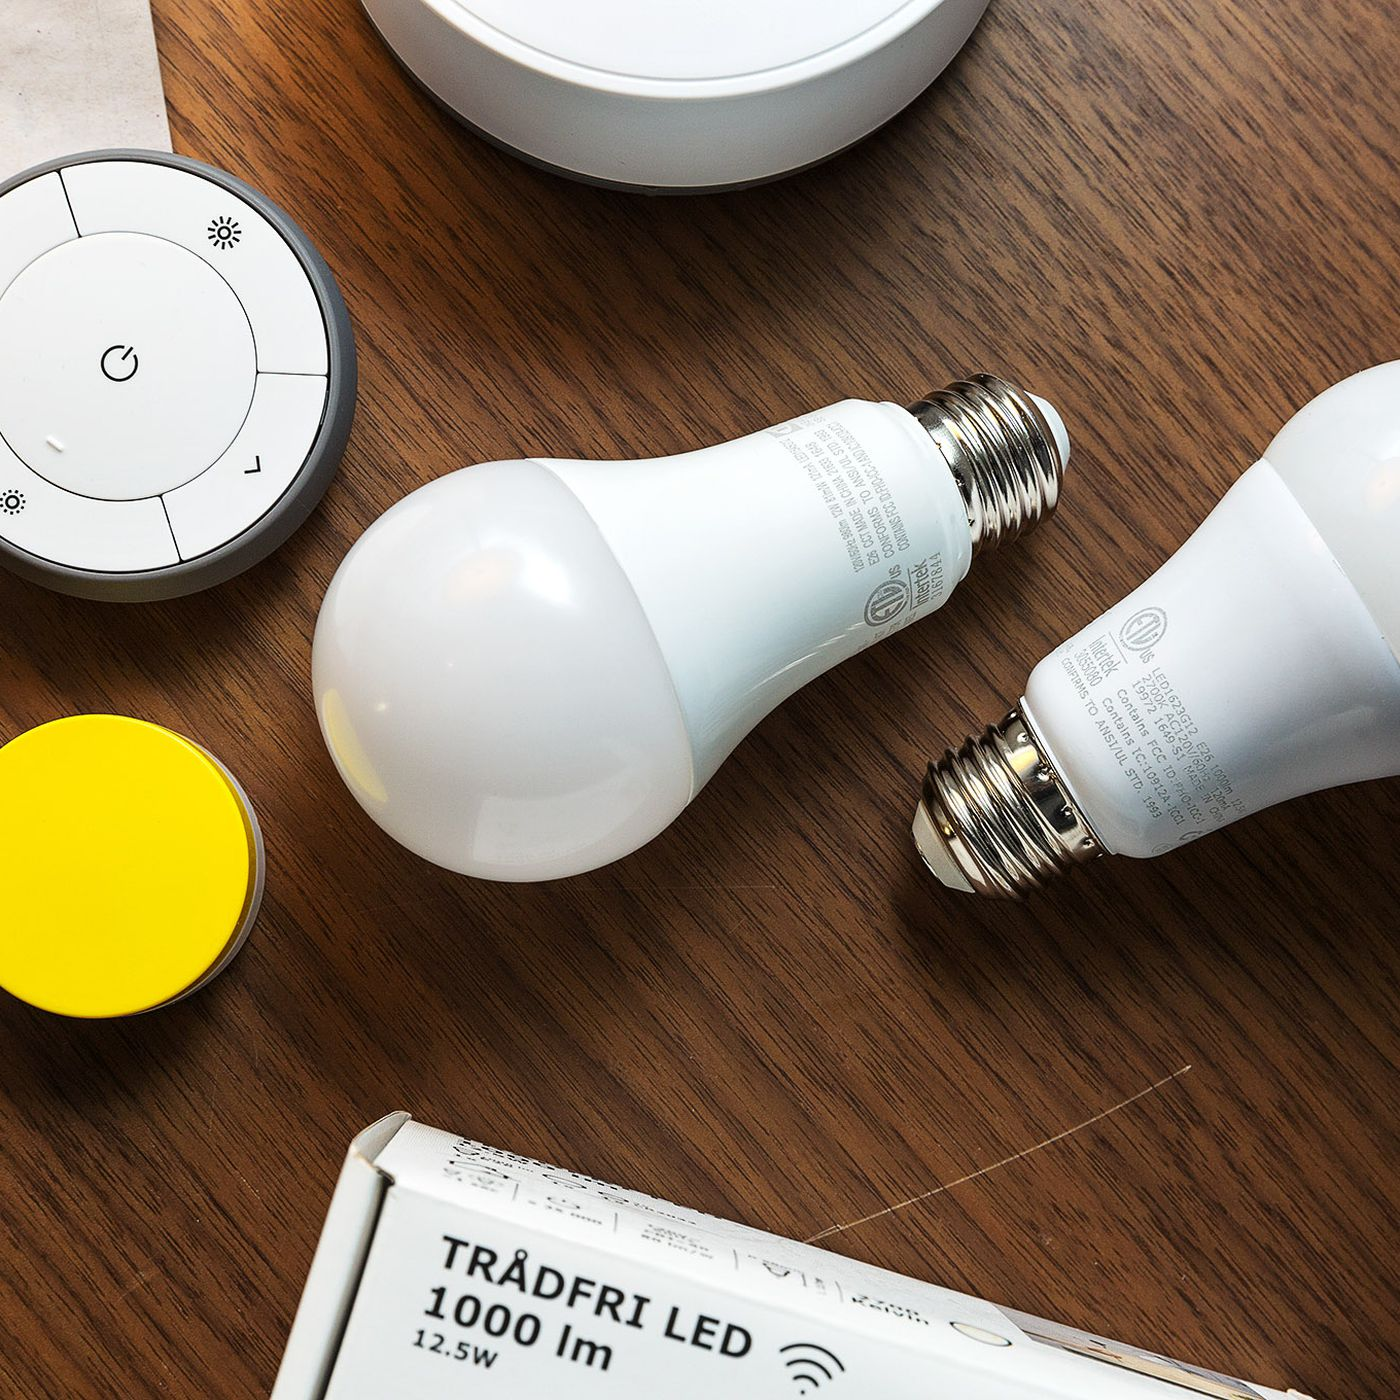 Ikea's smart lights are as stylish and breakable as its